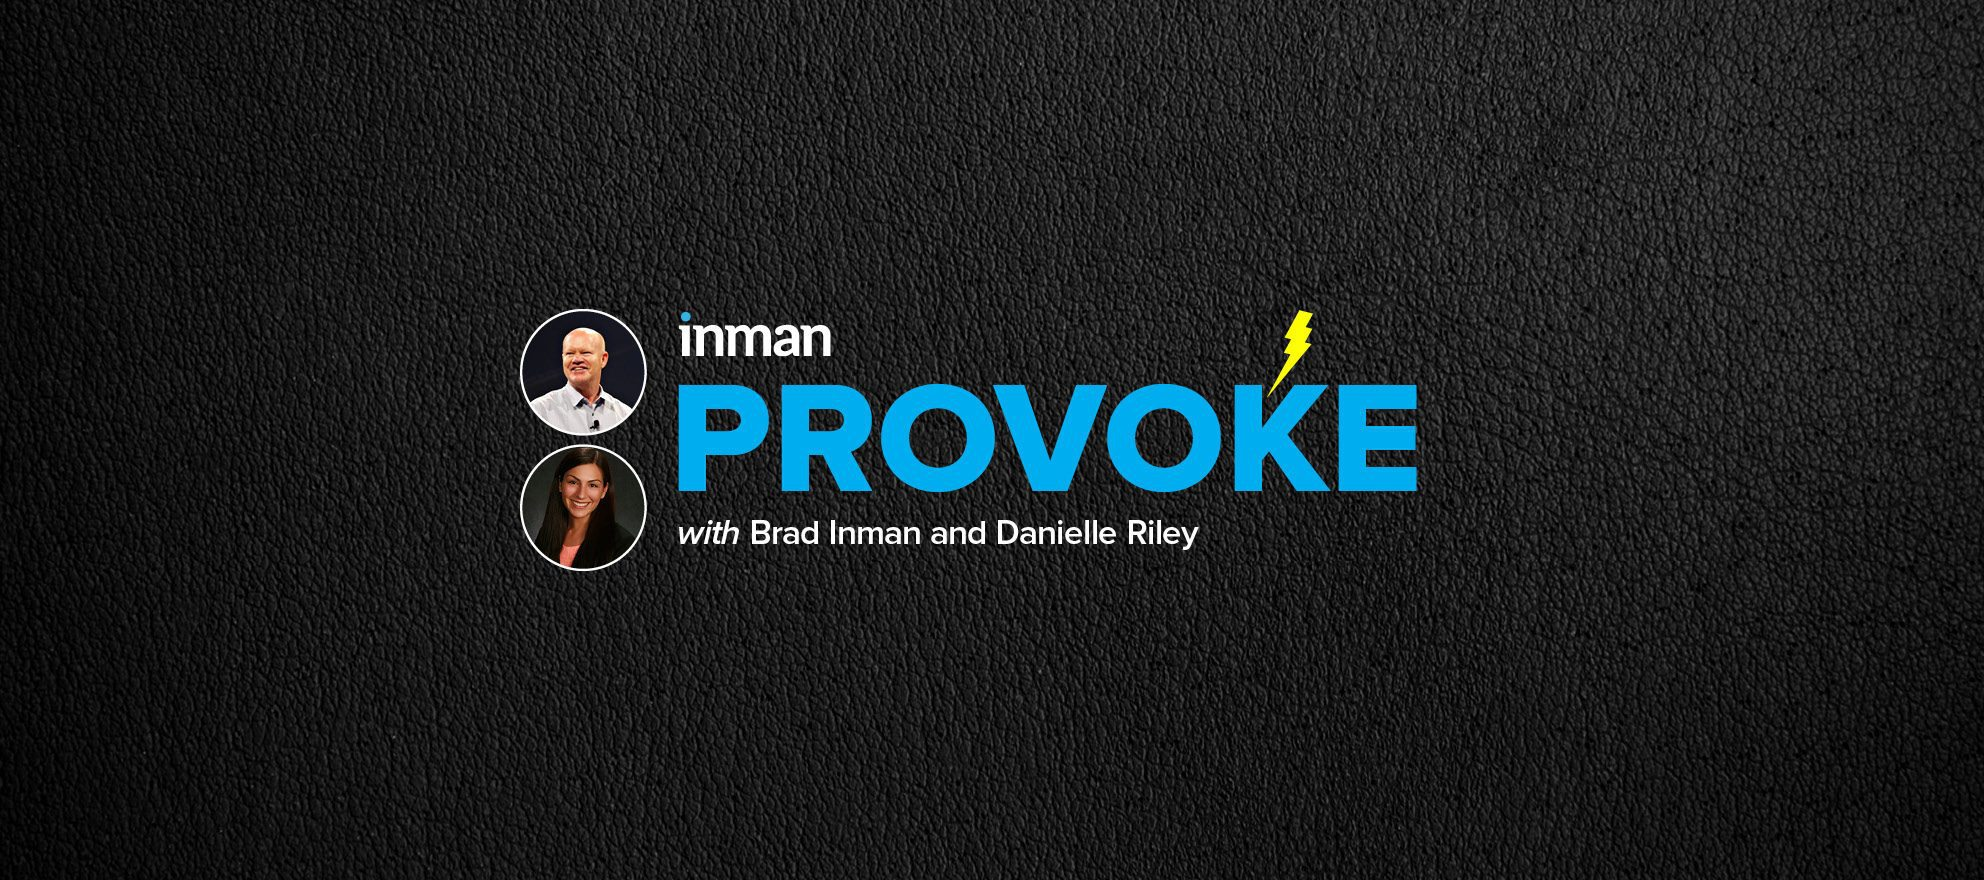 provoke episode 4